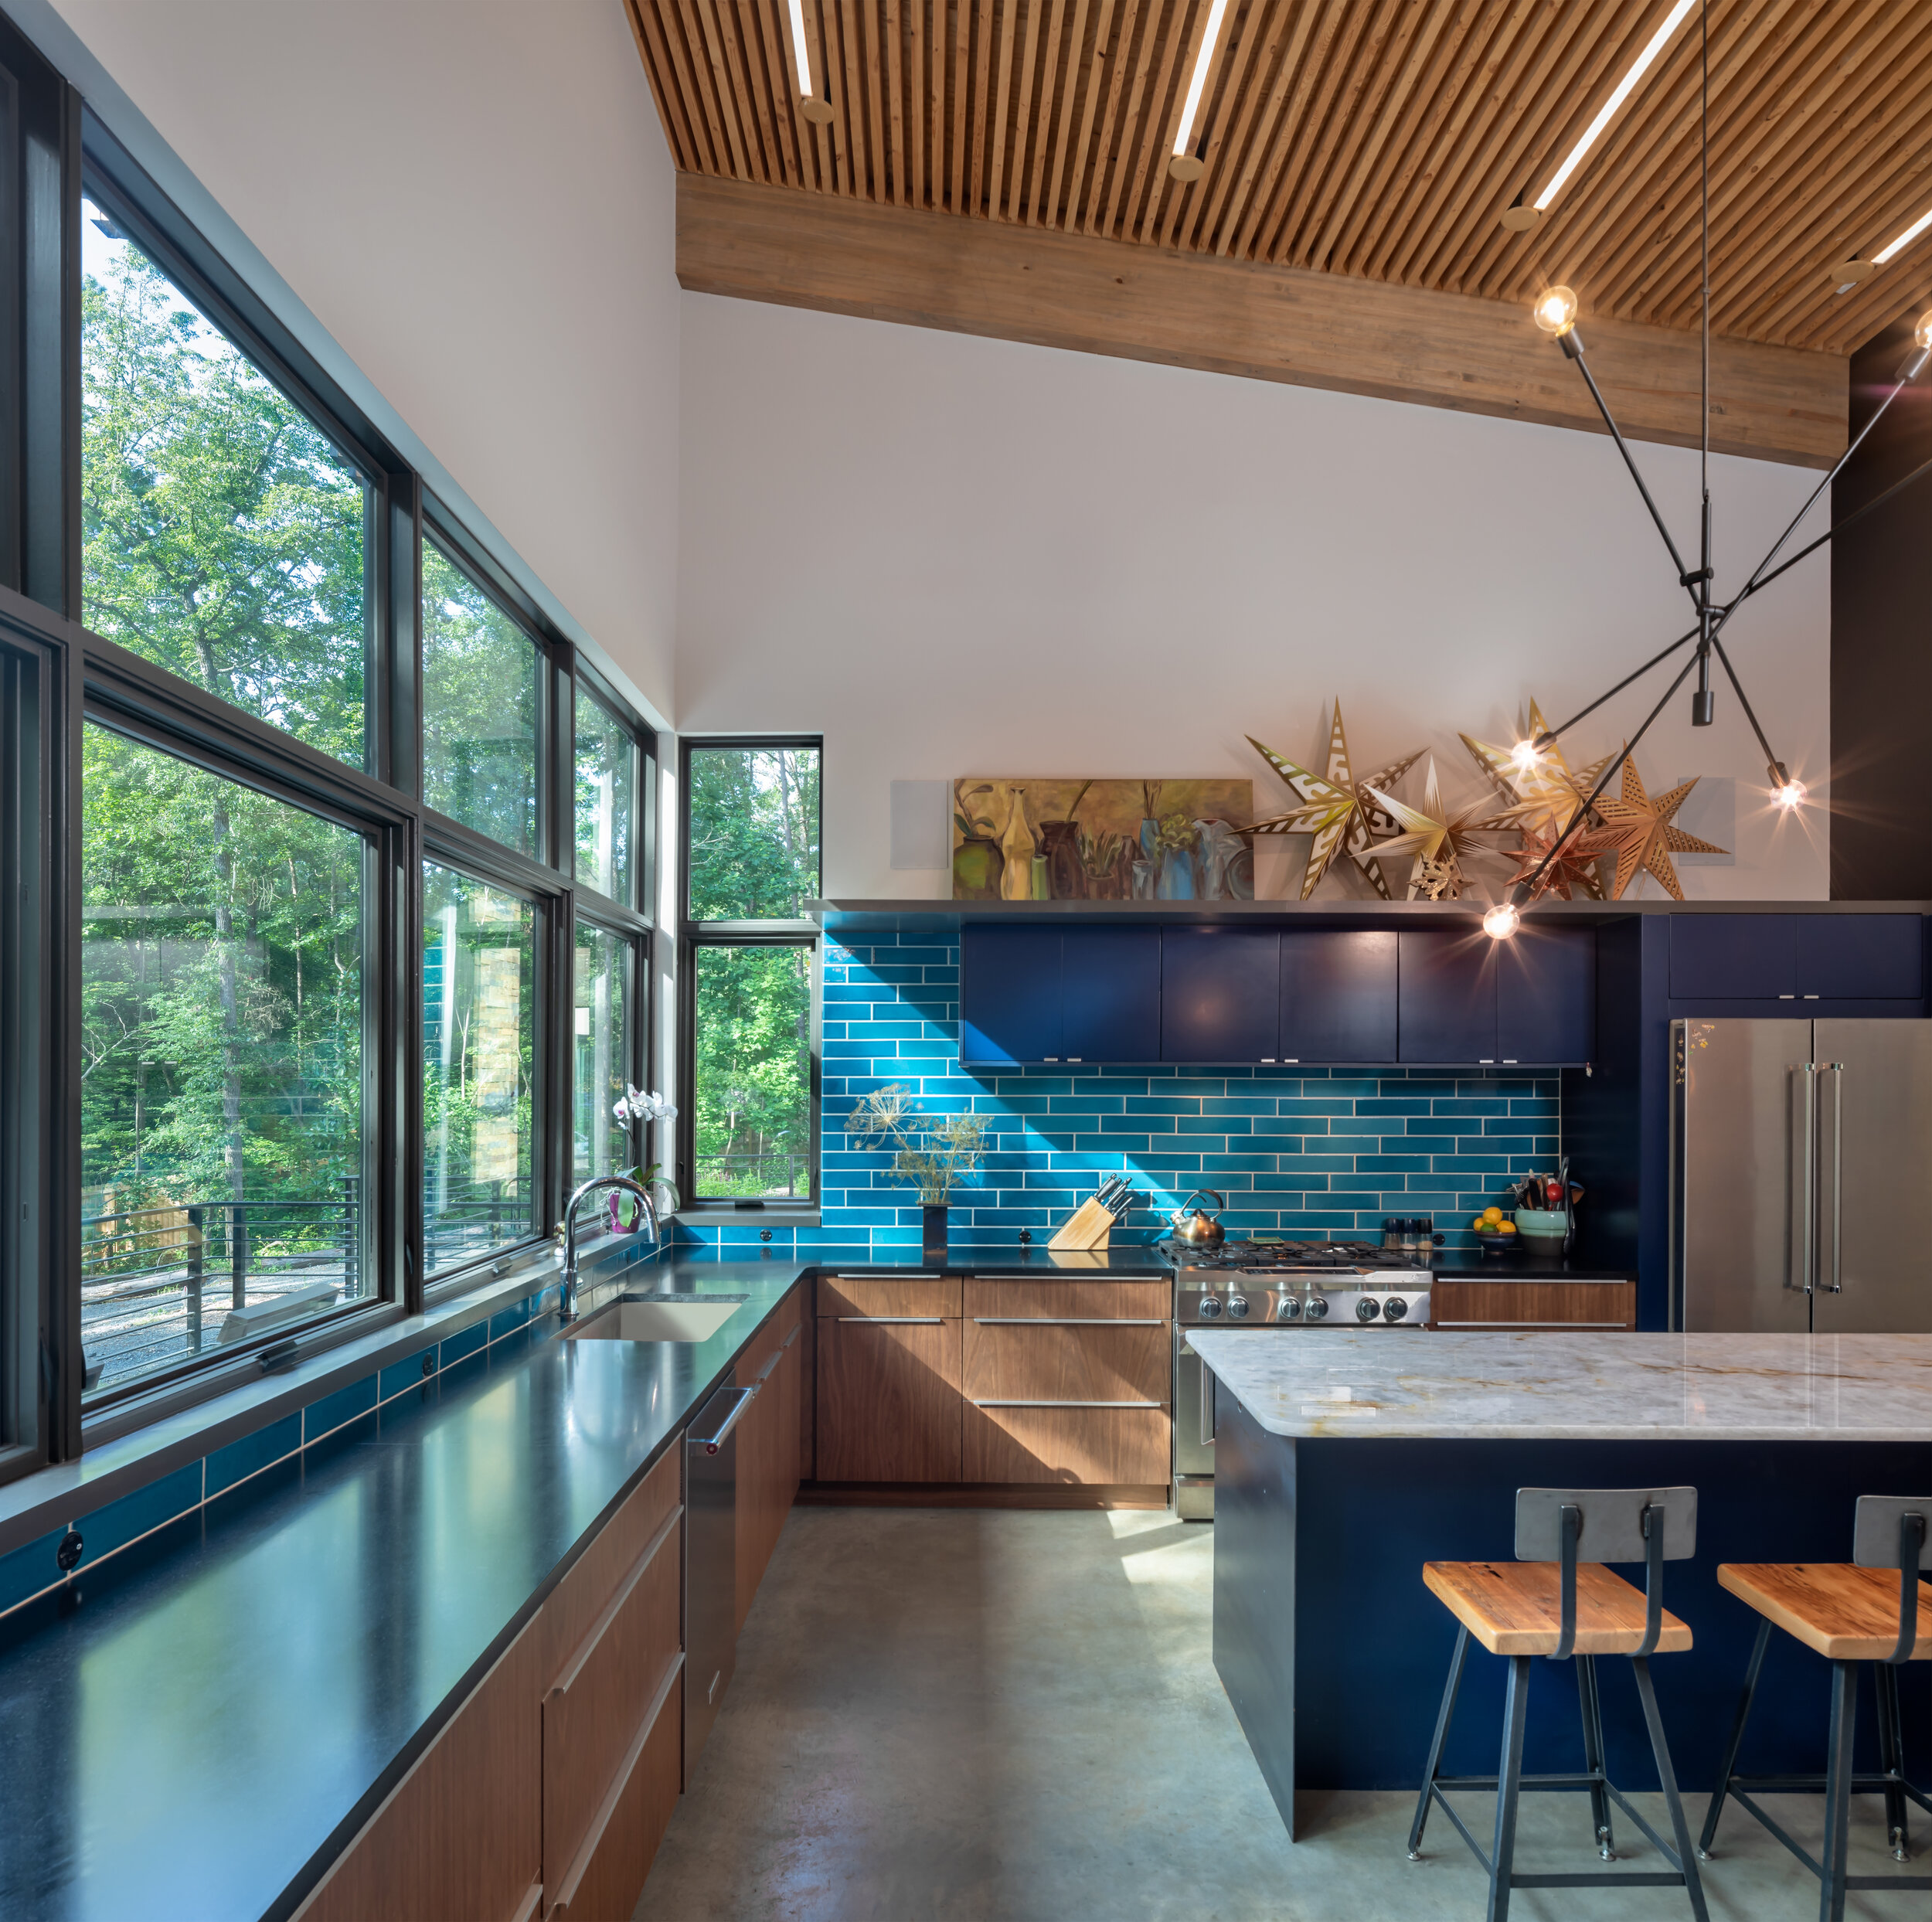 Kitchen details - expansive windows, custom blue cabinets, hand made subway tile, and slat wood ceiling with lights tucked between.